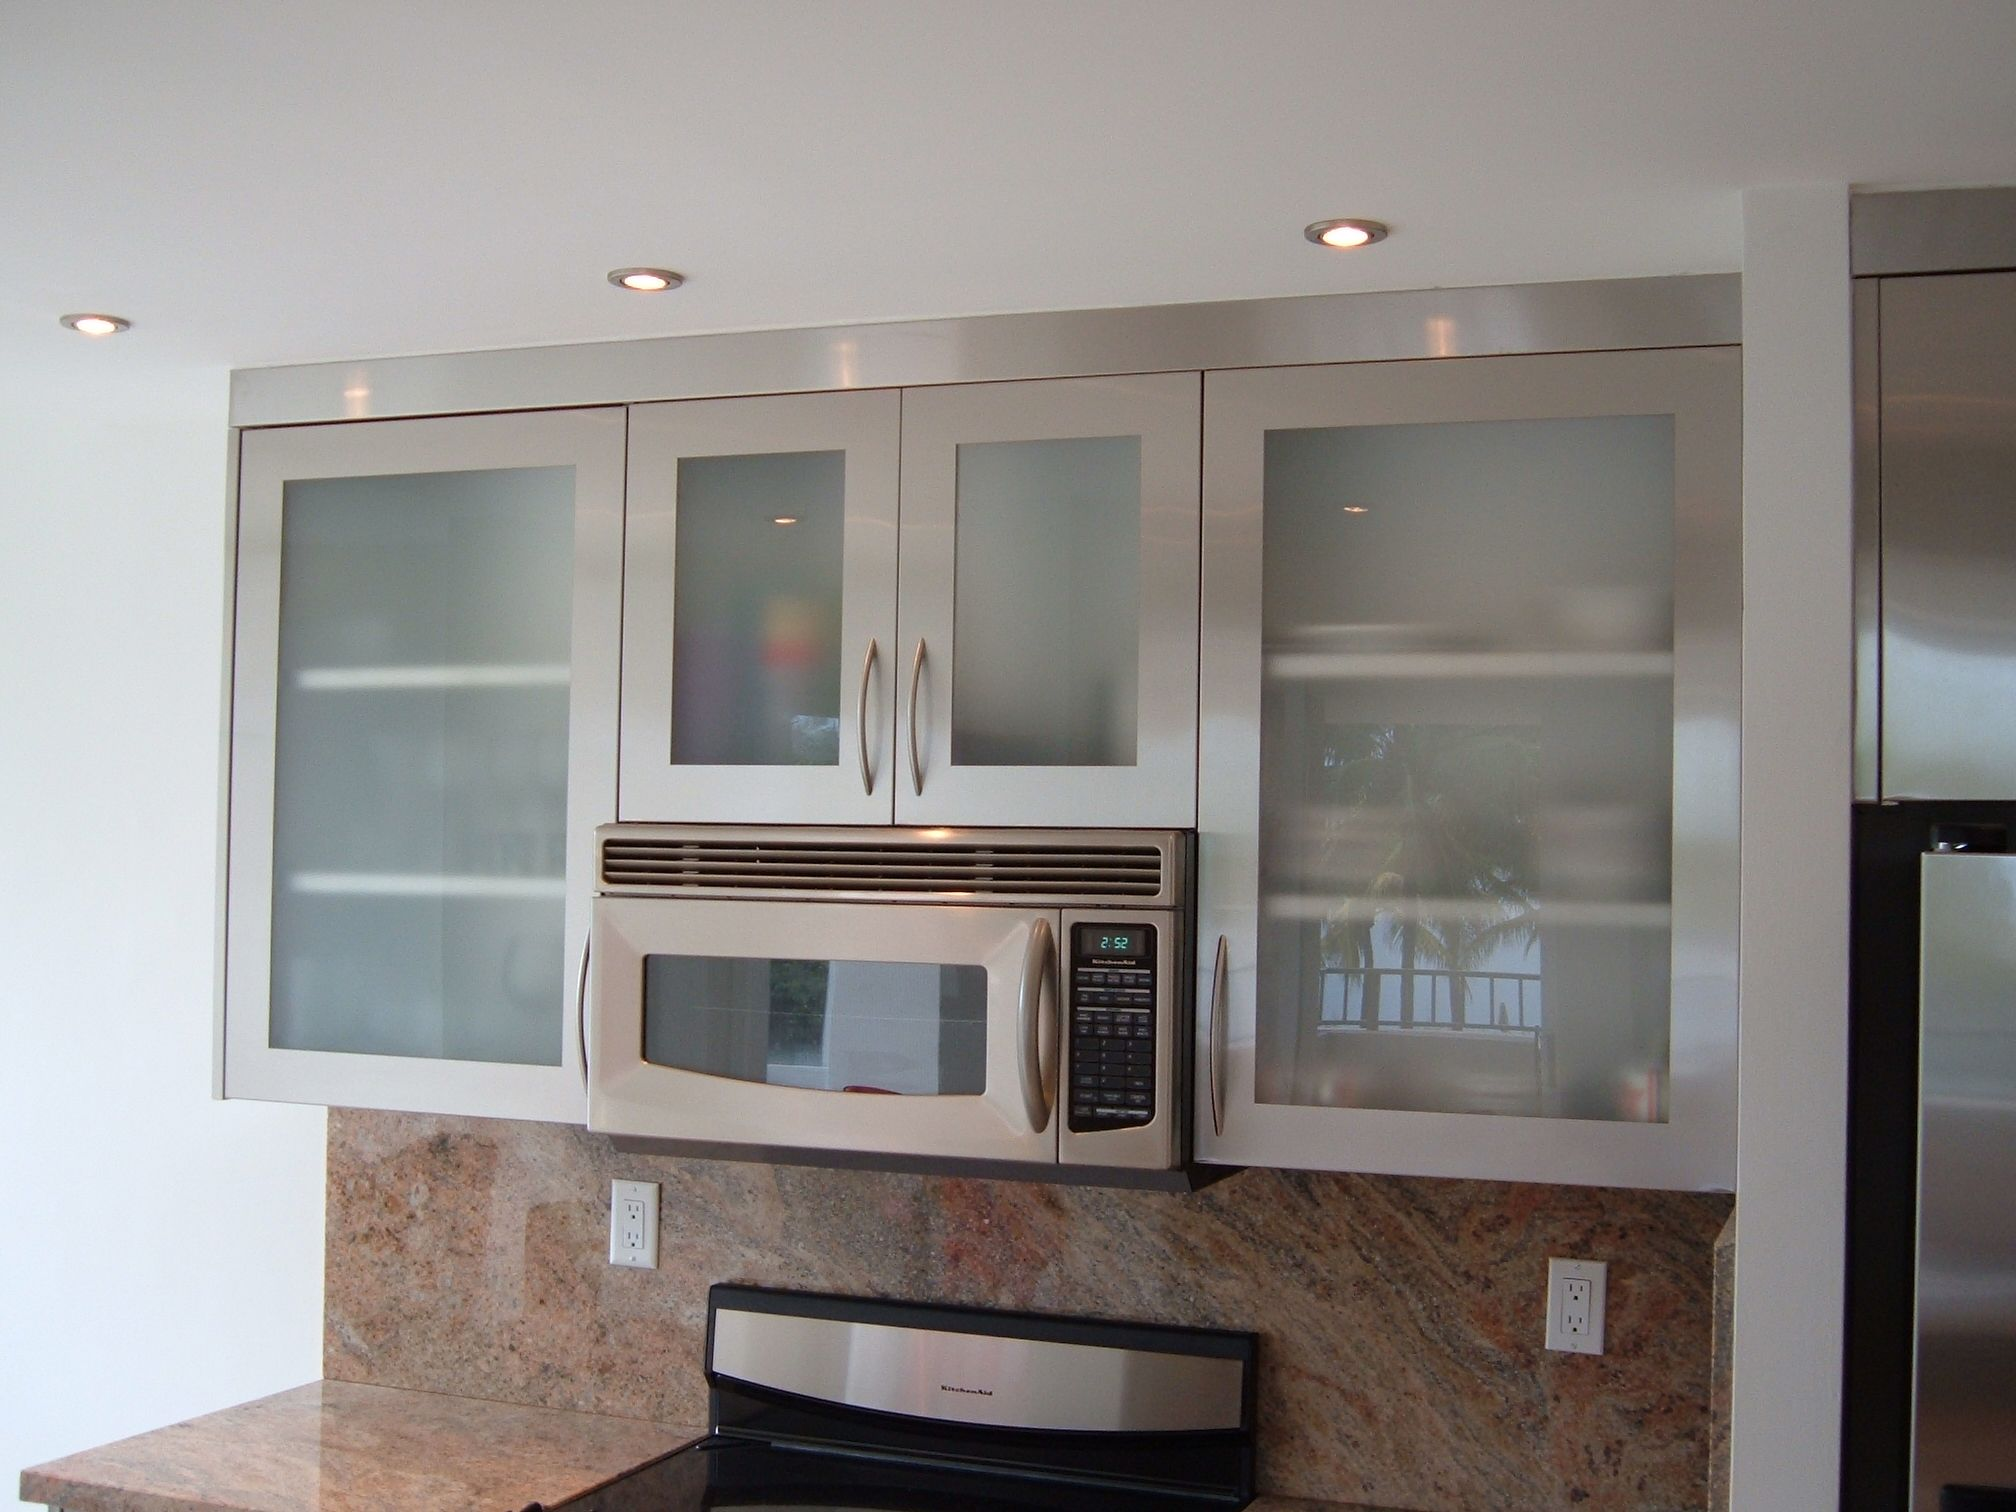 Charmant Steel Kitchen Cabinet Doors With Stainless Steel Kitchen Cabinets .